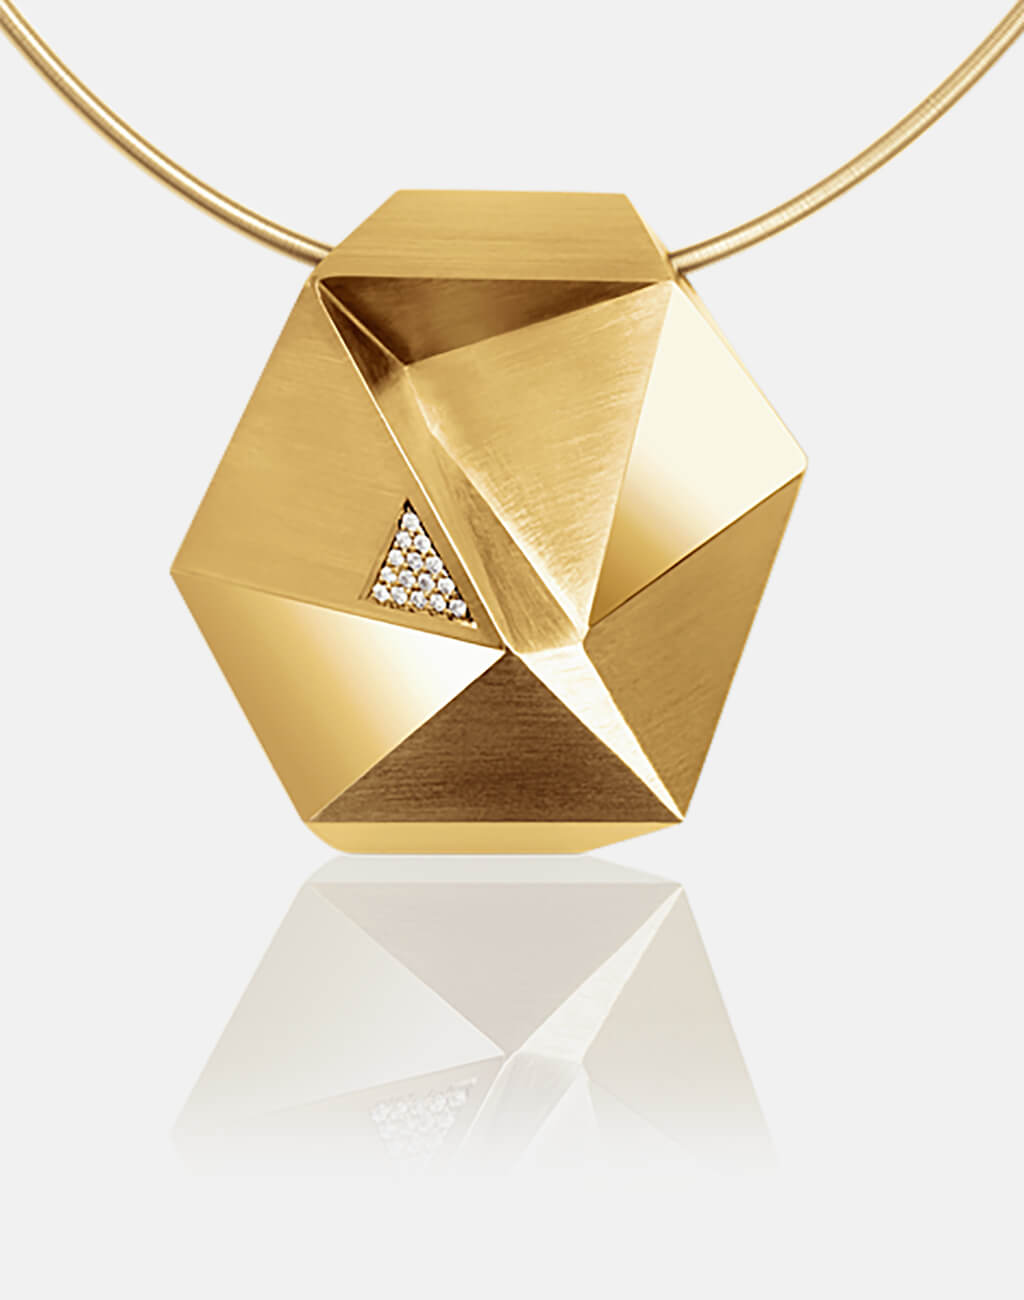 Tectone | Collier, Kette, Kettenanhänger - 750/- Gelbgold, Diamanten-Brillanten | necklace, pendant - 18kt yellow gold, diamonds | SYNO-Schmuck.com